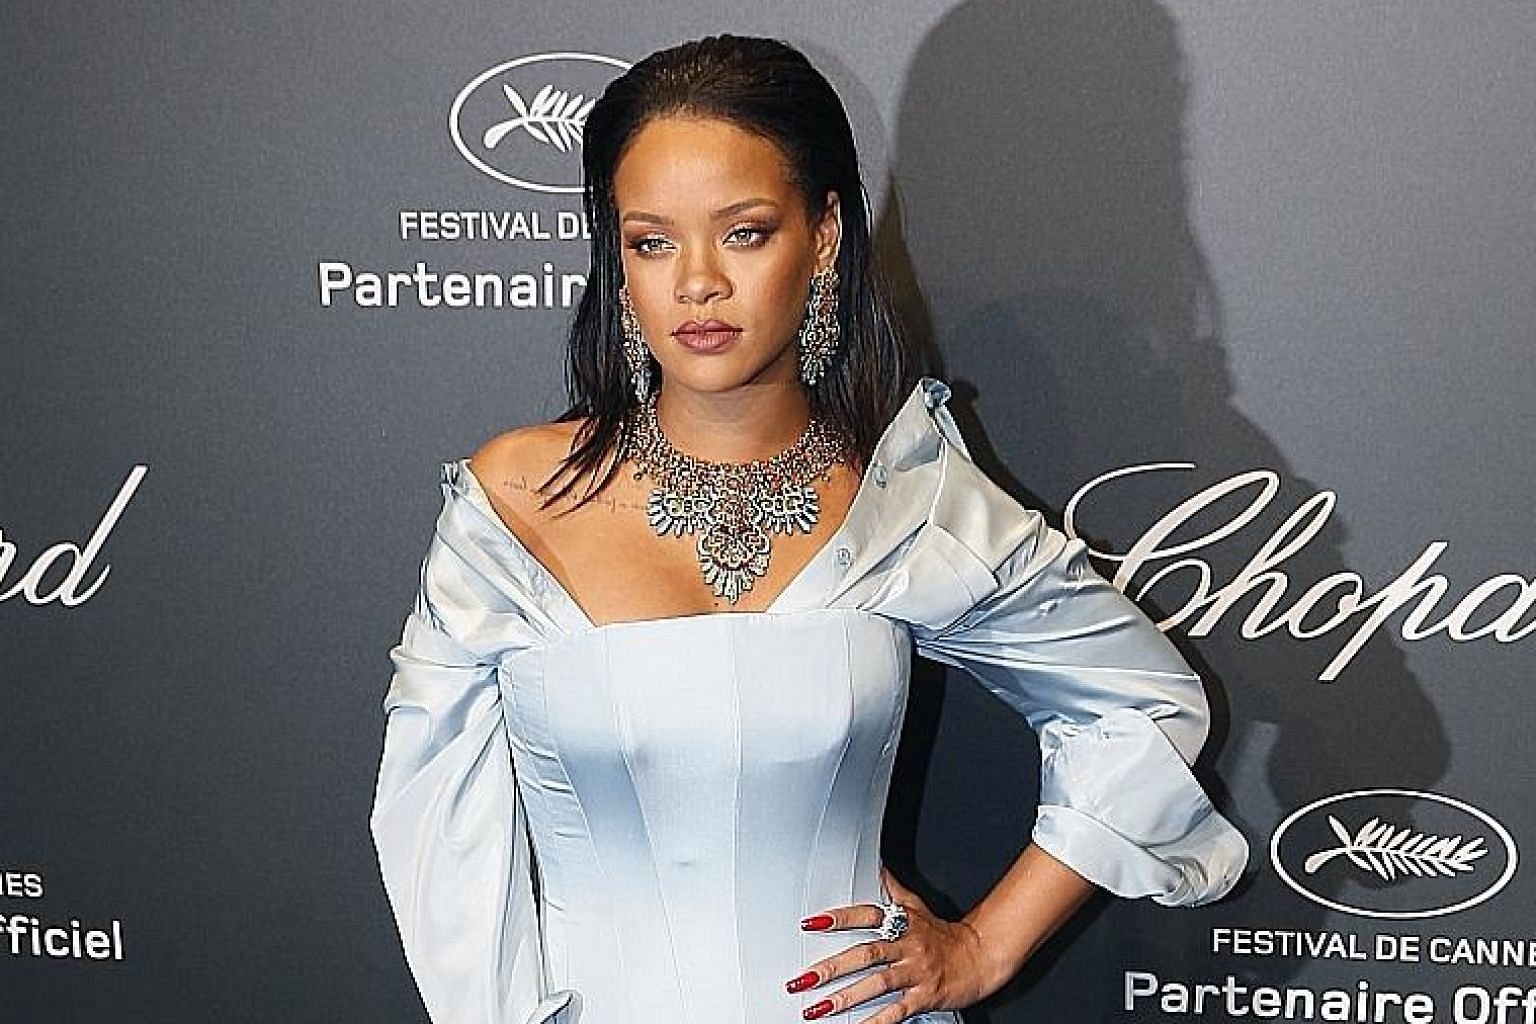 A package donated by Rihanna (left) for a benefit that included tickets to her fashion show was sold at US$24,000 (S$33,340).